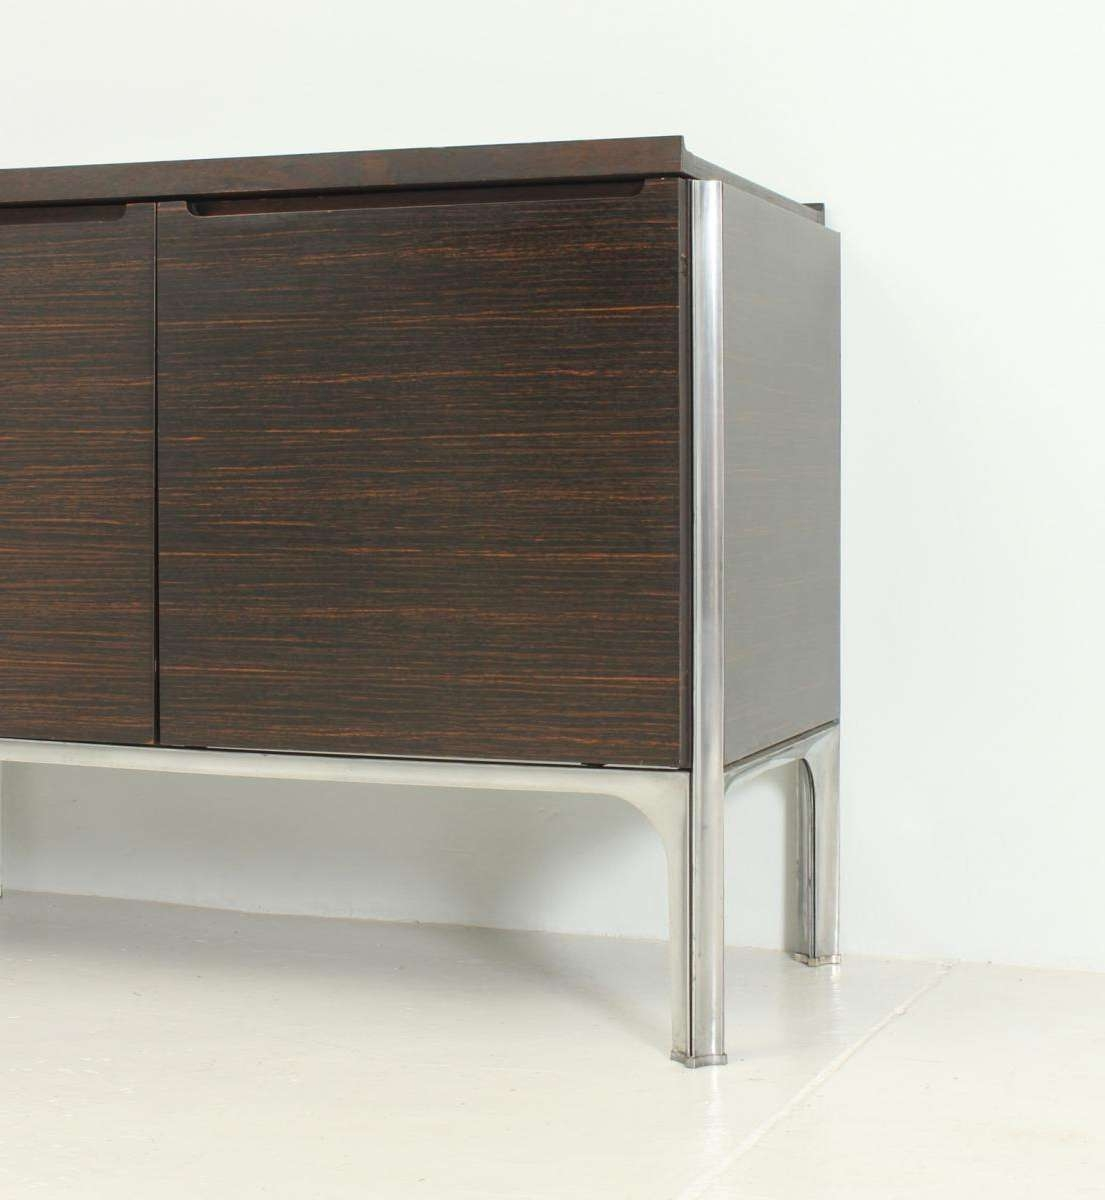 Macassar Ebony Wood Sideboardraymond Loewy For Df 2000 For Regarding Affinity Sideboards (View 11 of 20)